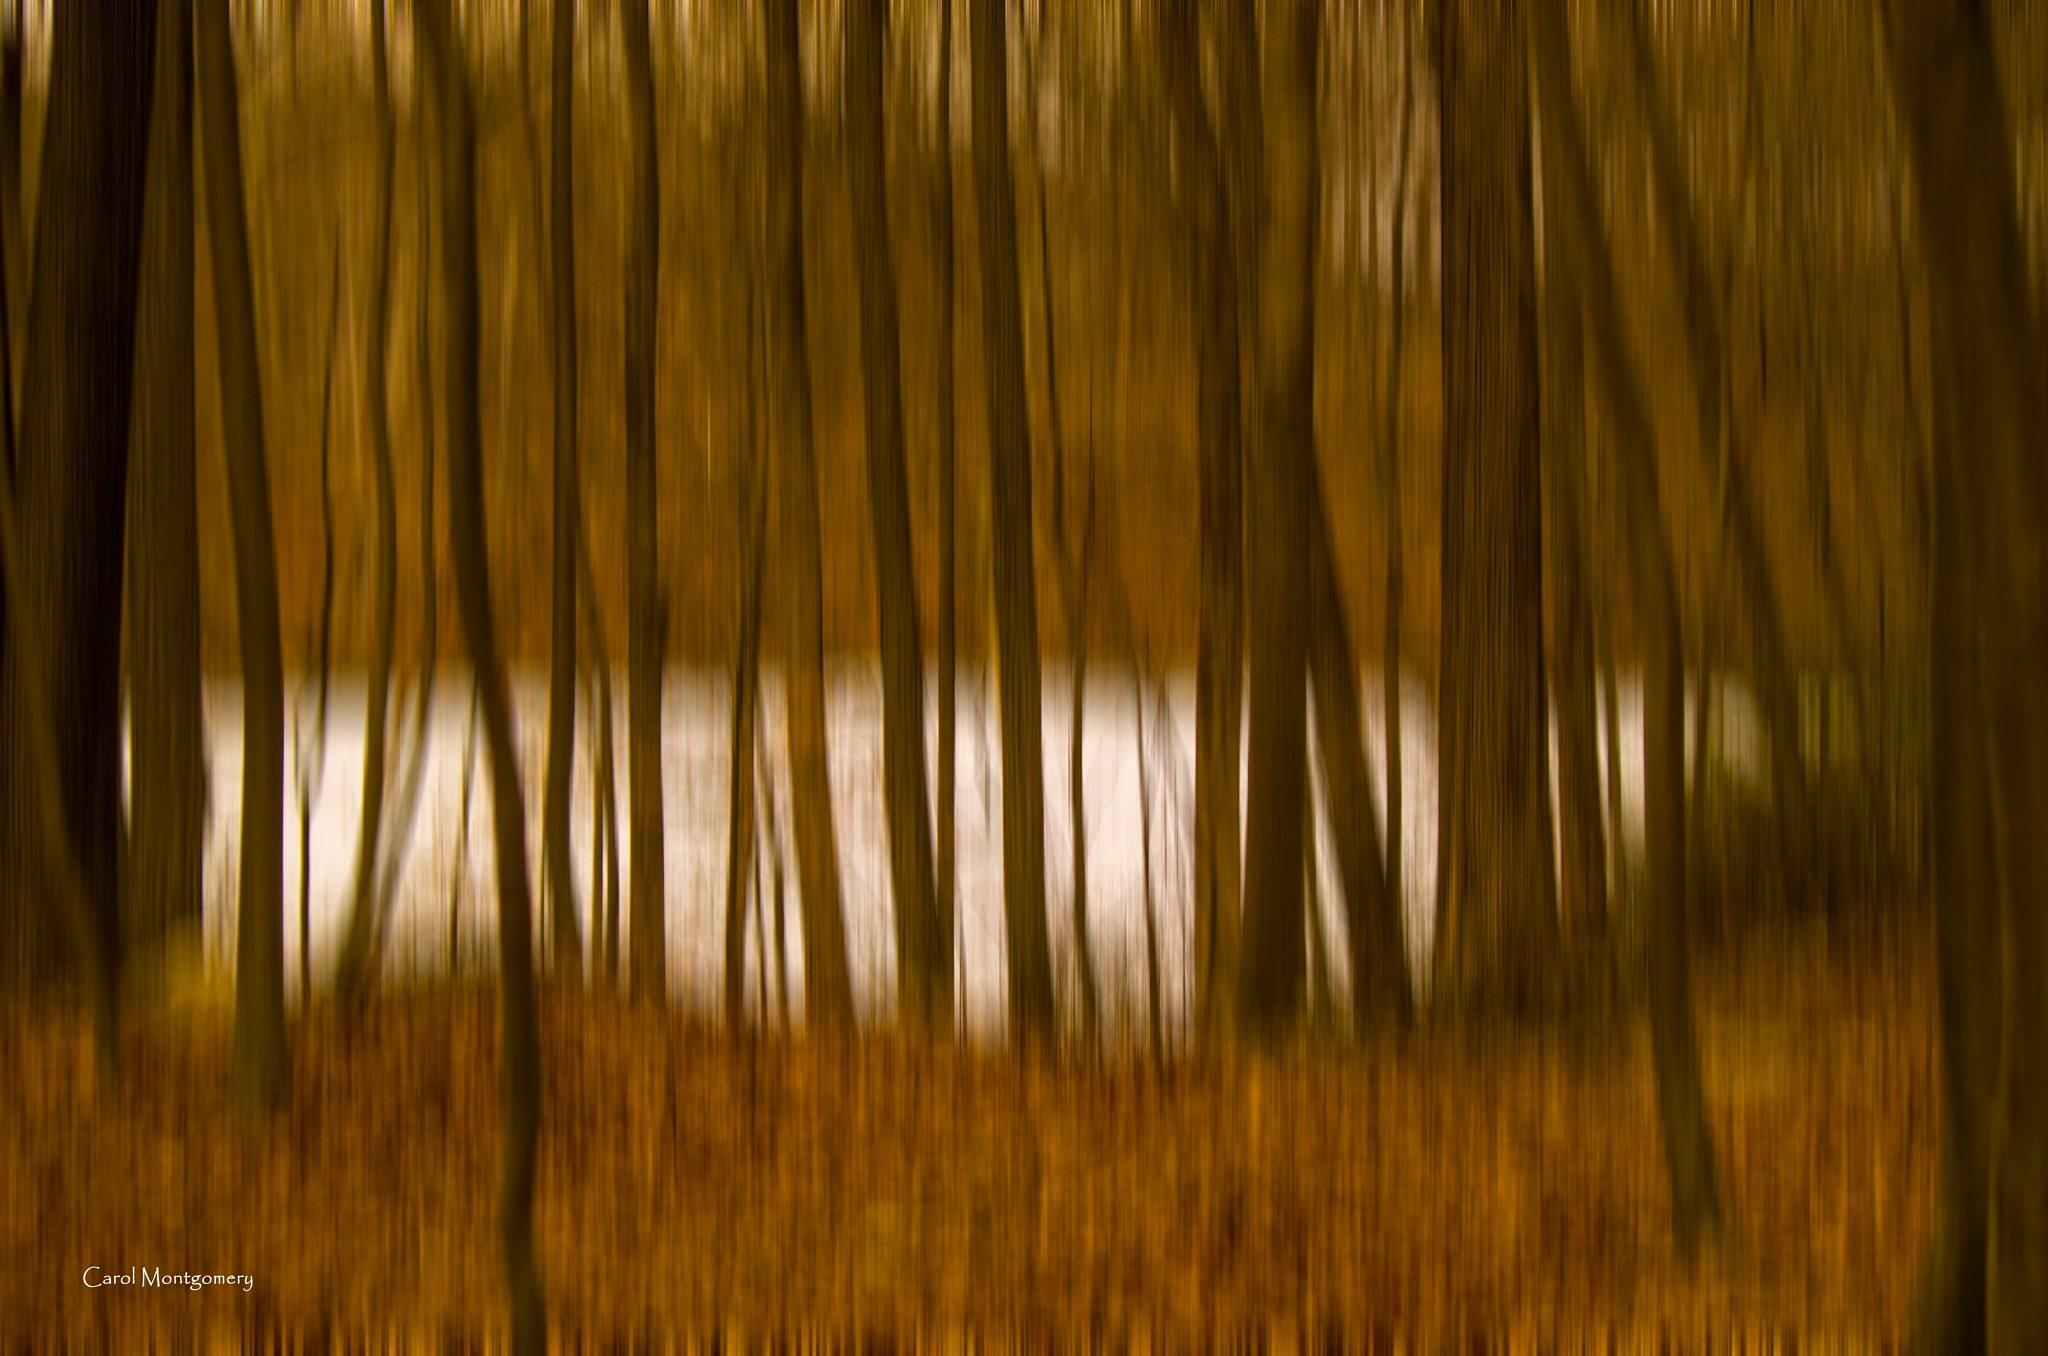 In the woods by Carol Montgomery